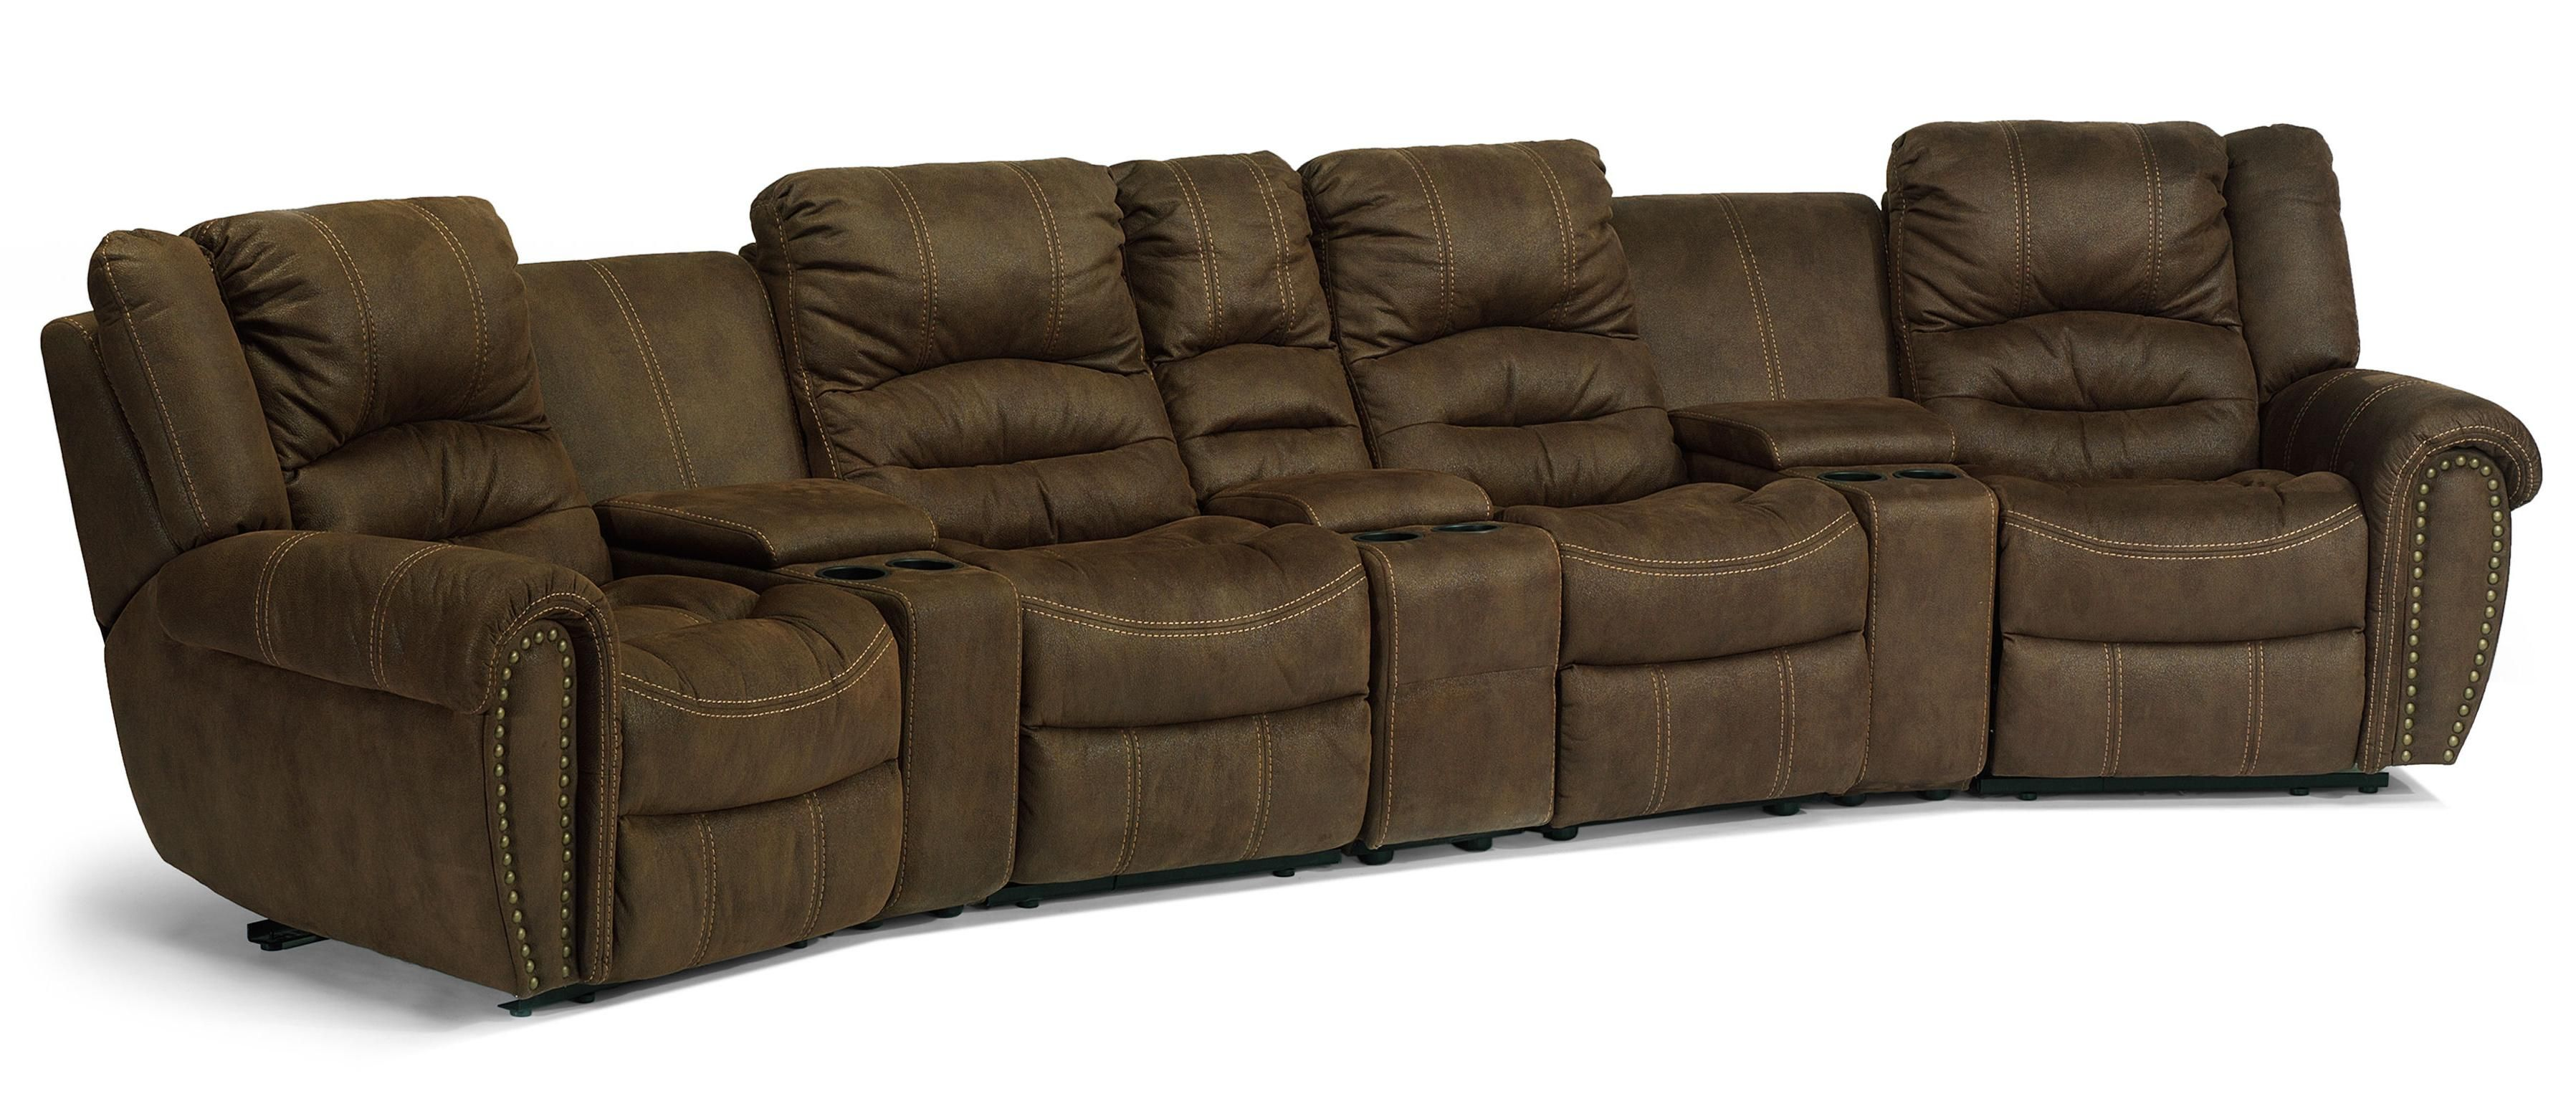 Latitudes New Town Reclining Sectional Sofa By Flexsteel